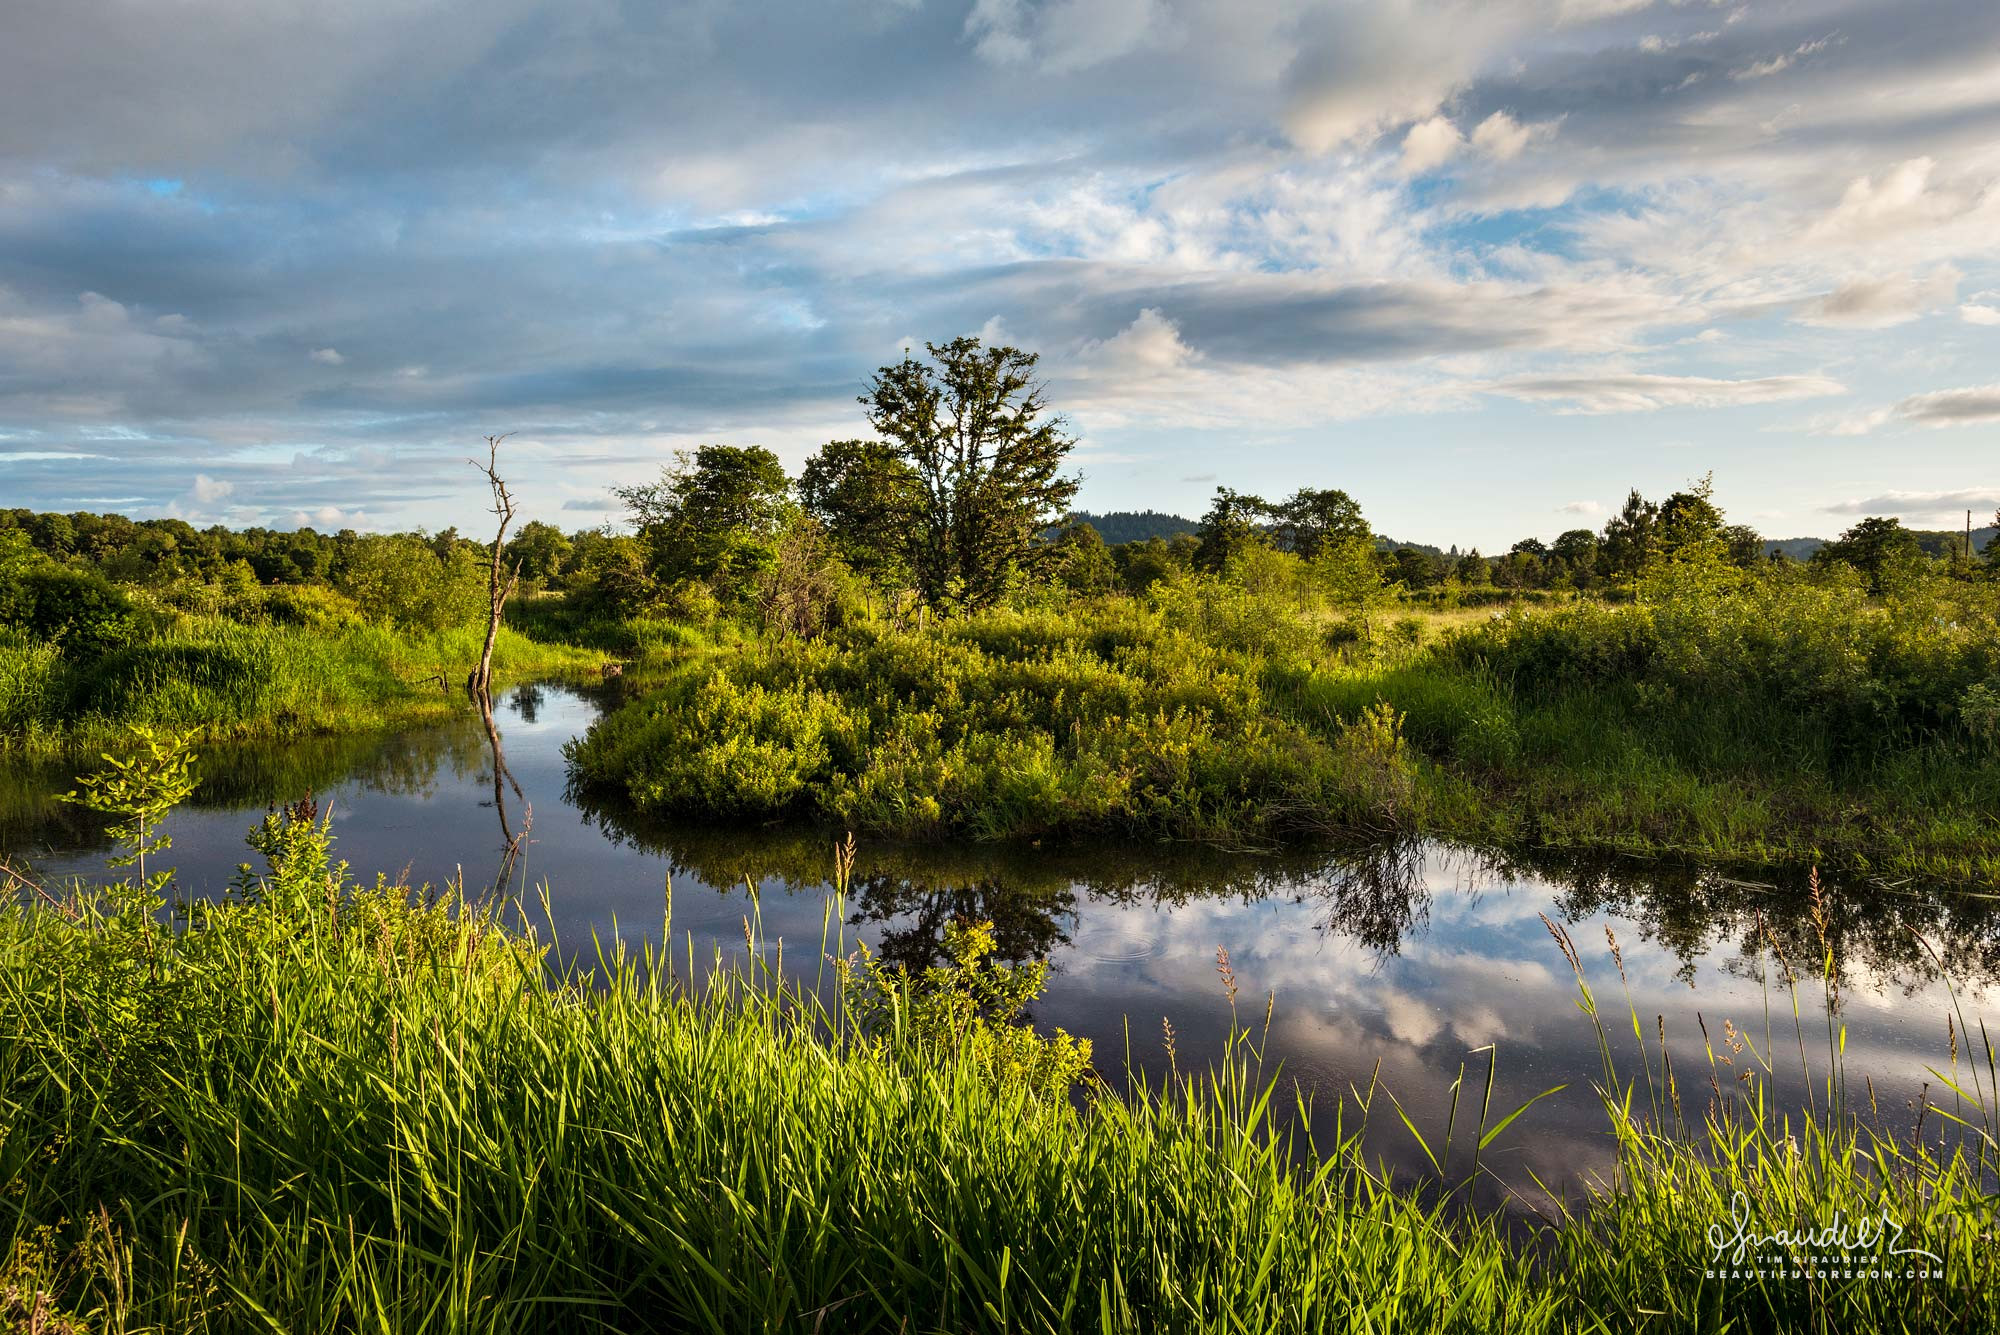 A lush oxbow wetland along the Long Tom River. South Willamette Valley wetland restoration project. Lane County, Oregon landscape photography